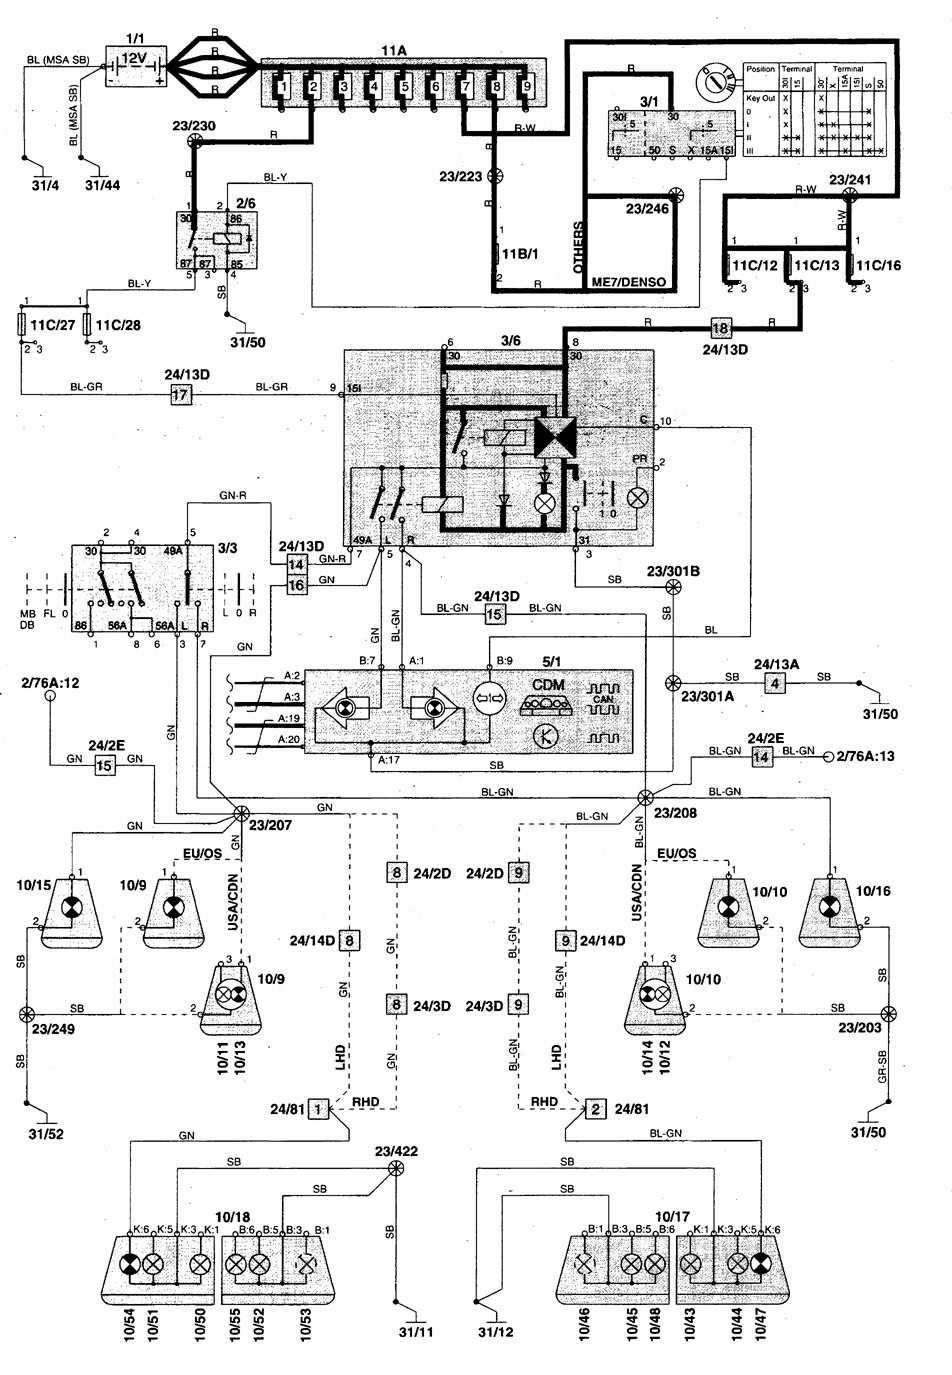 volvo s70 wiring diagram best secret wiring diagram u2022 rh resultadoloterias co 1999 Volvo S70 Engine Diagram 2000 volvo v70 radio wiring diagram